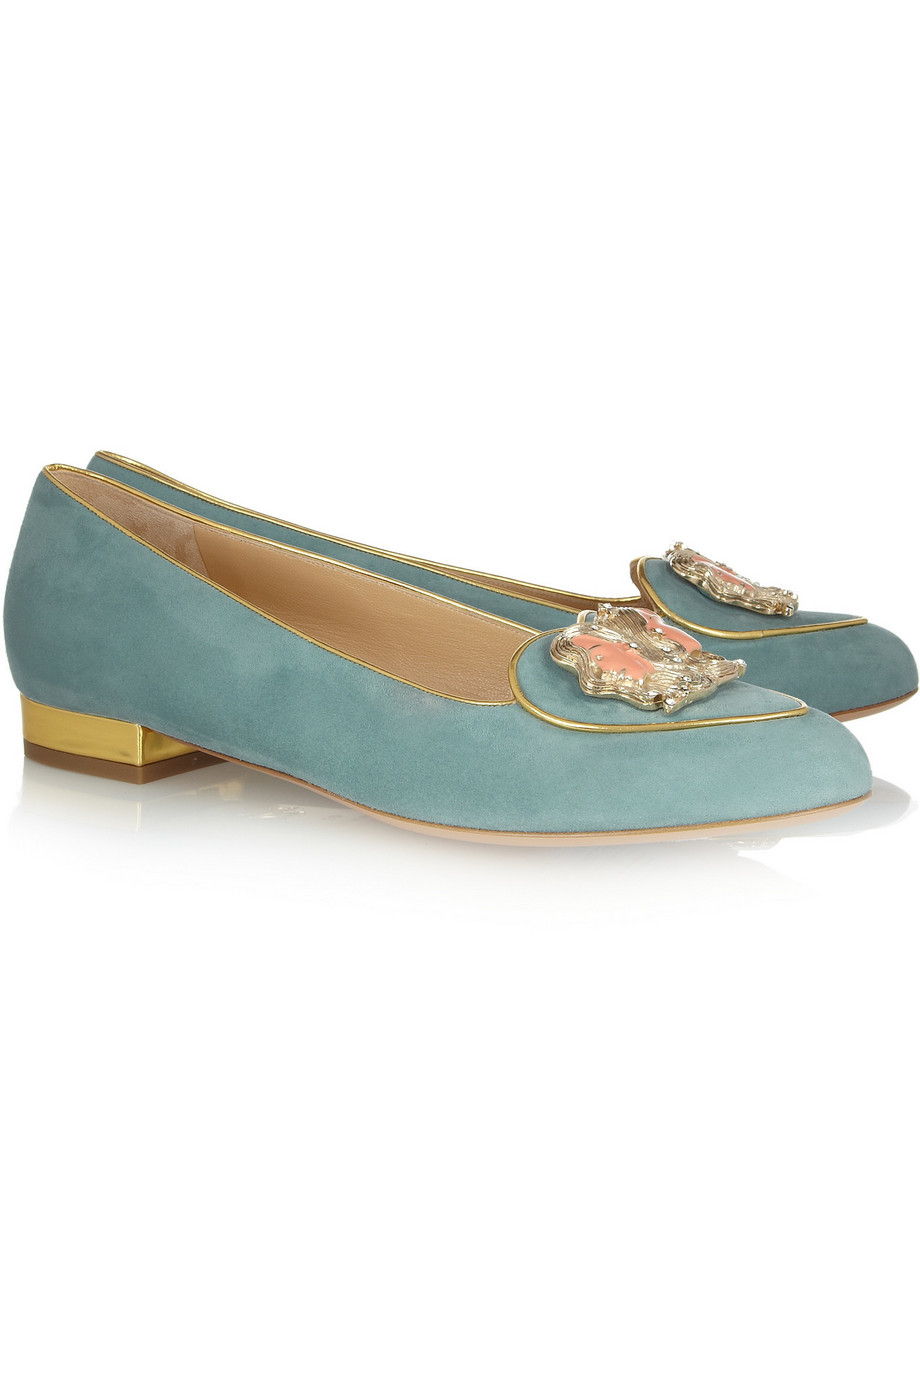 Charlotte Olympia  front